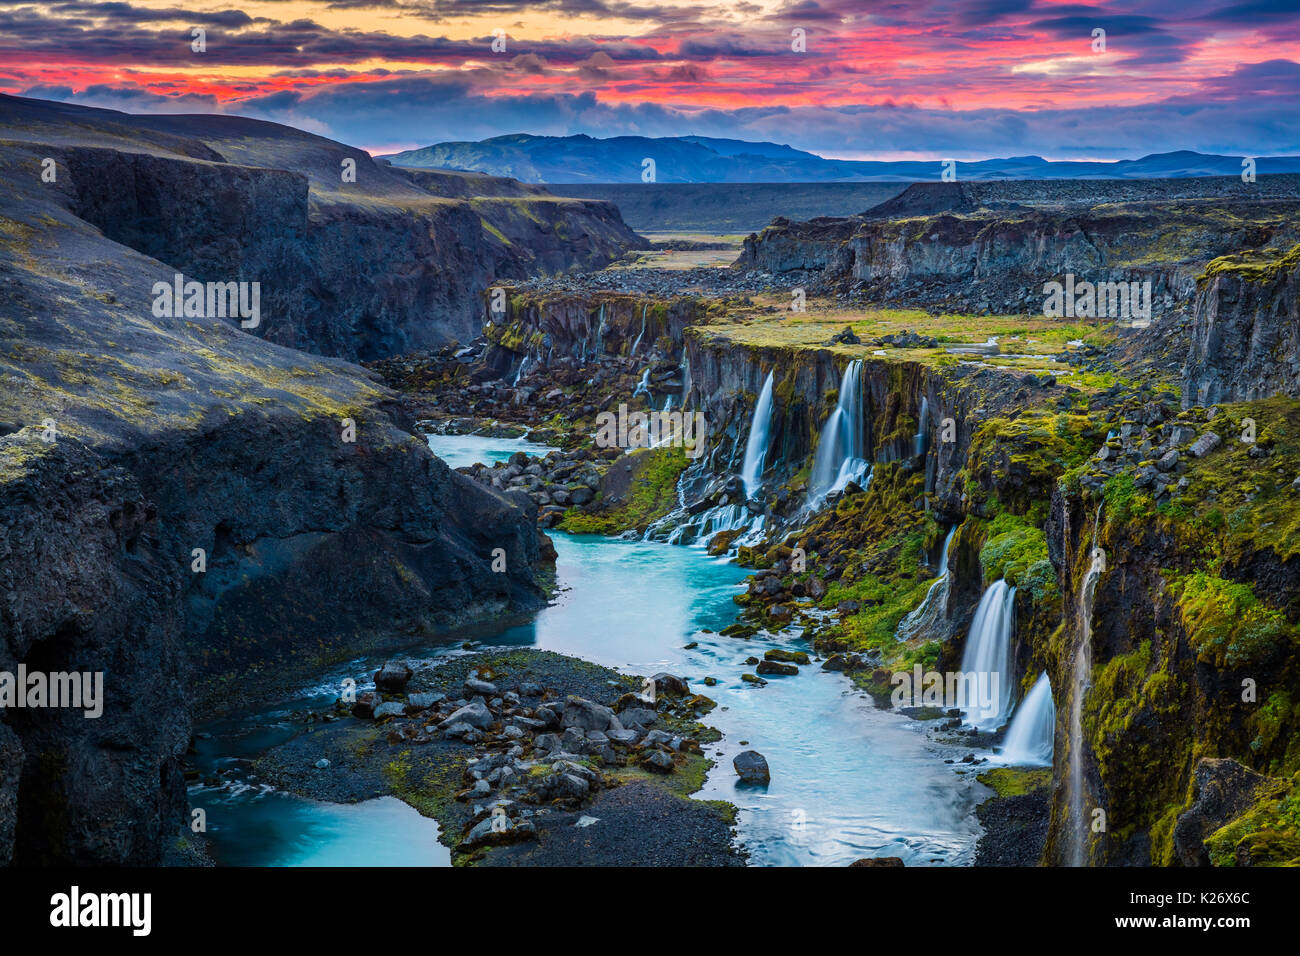 Canyon with multiple waterfalls in the Southern Region of Iceland - Stock Image